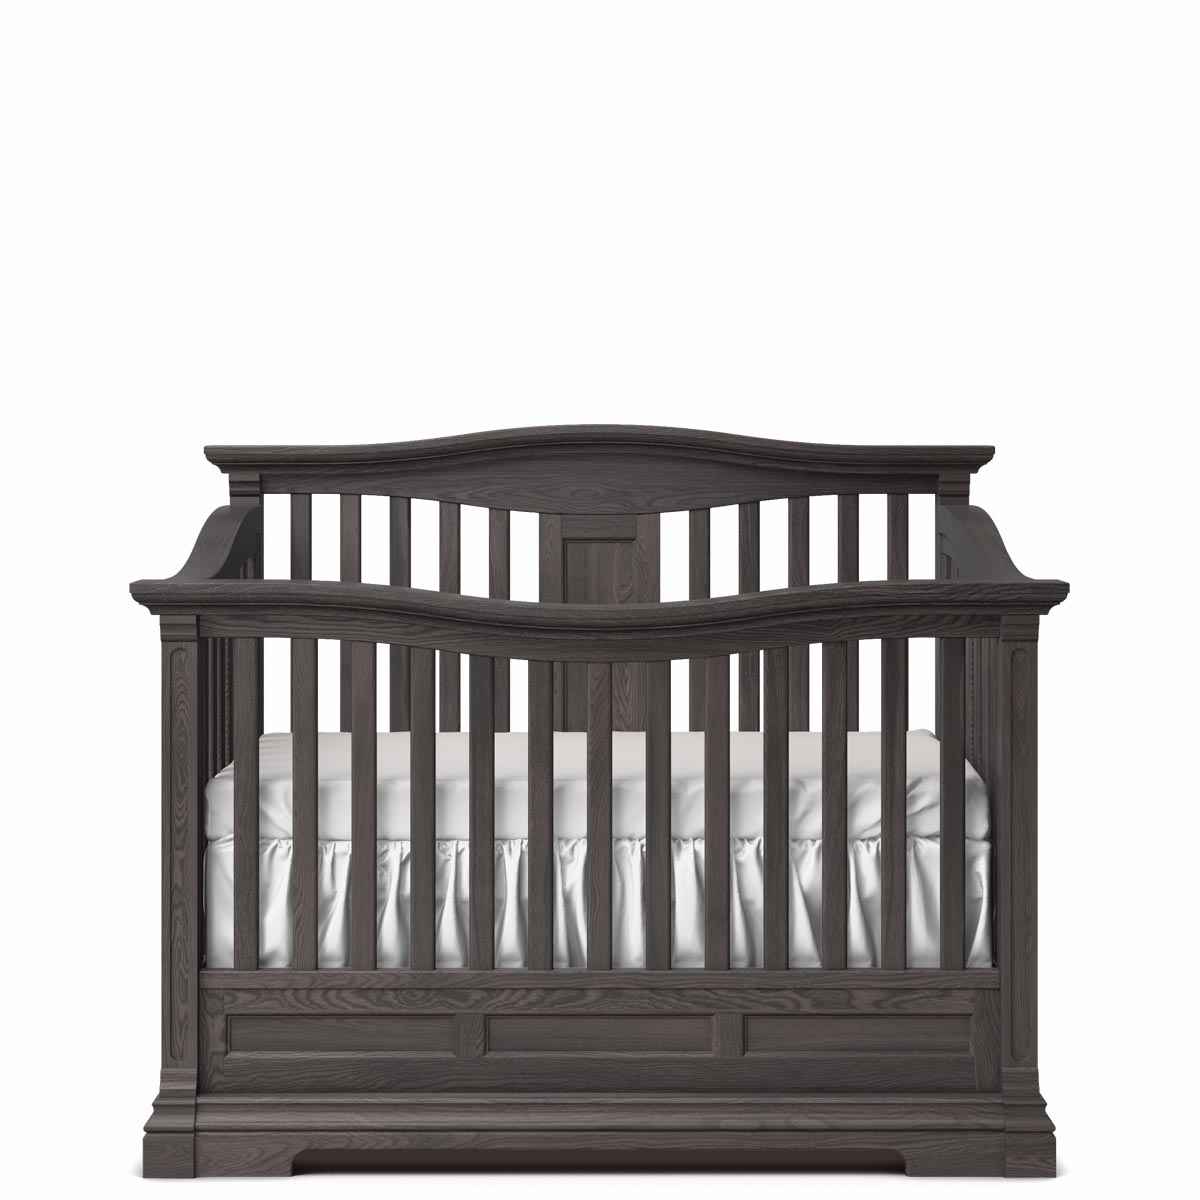 Romina Imperio Convertible Crib with Slat Back